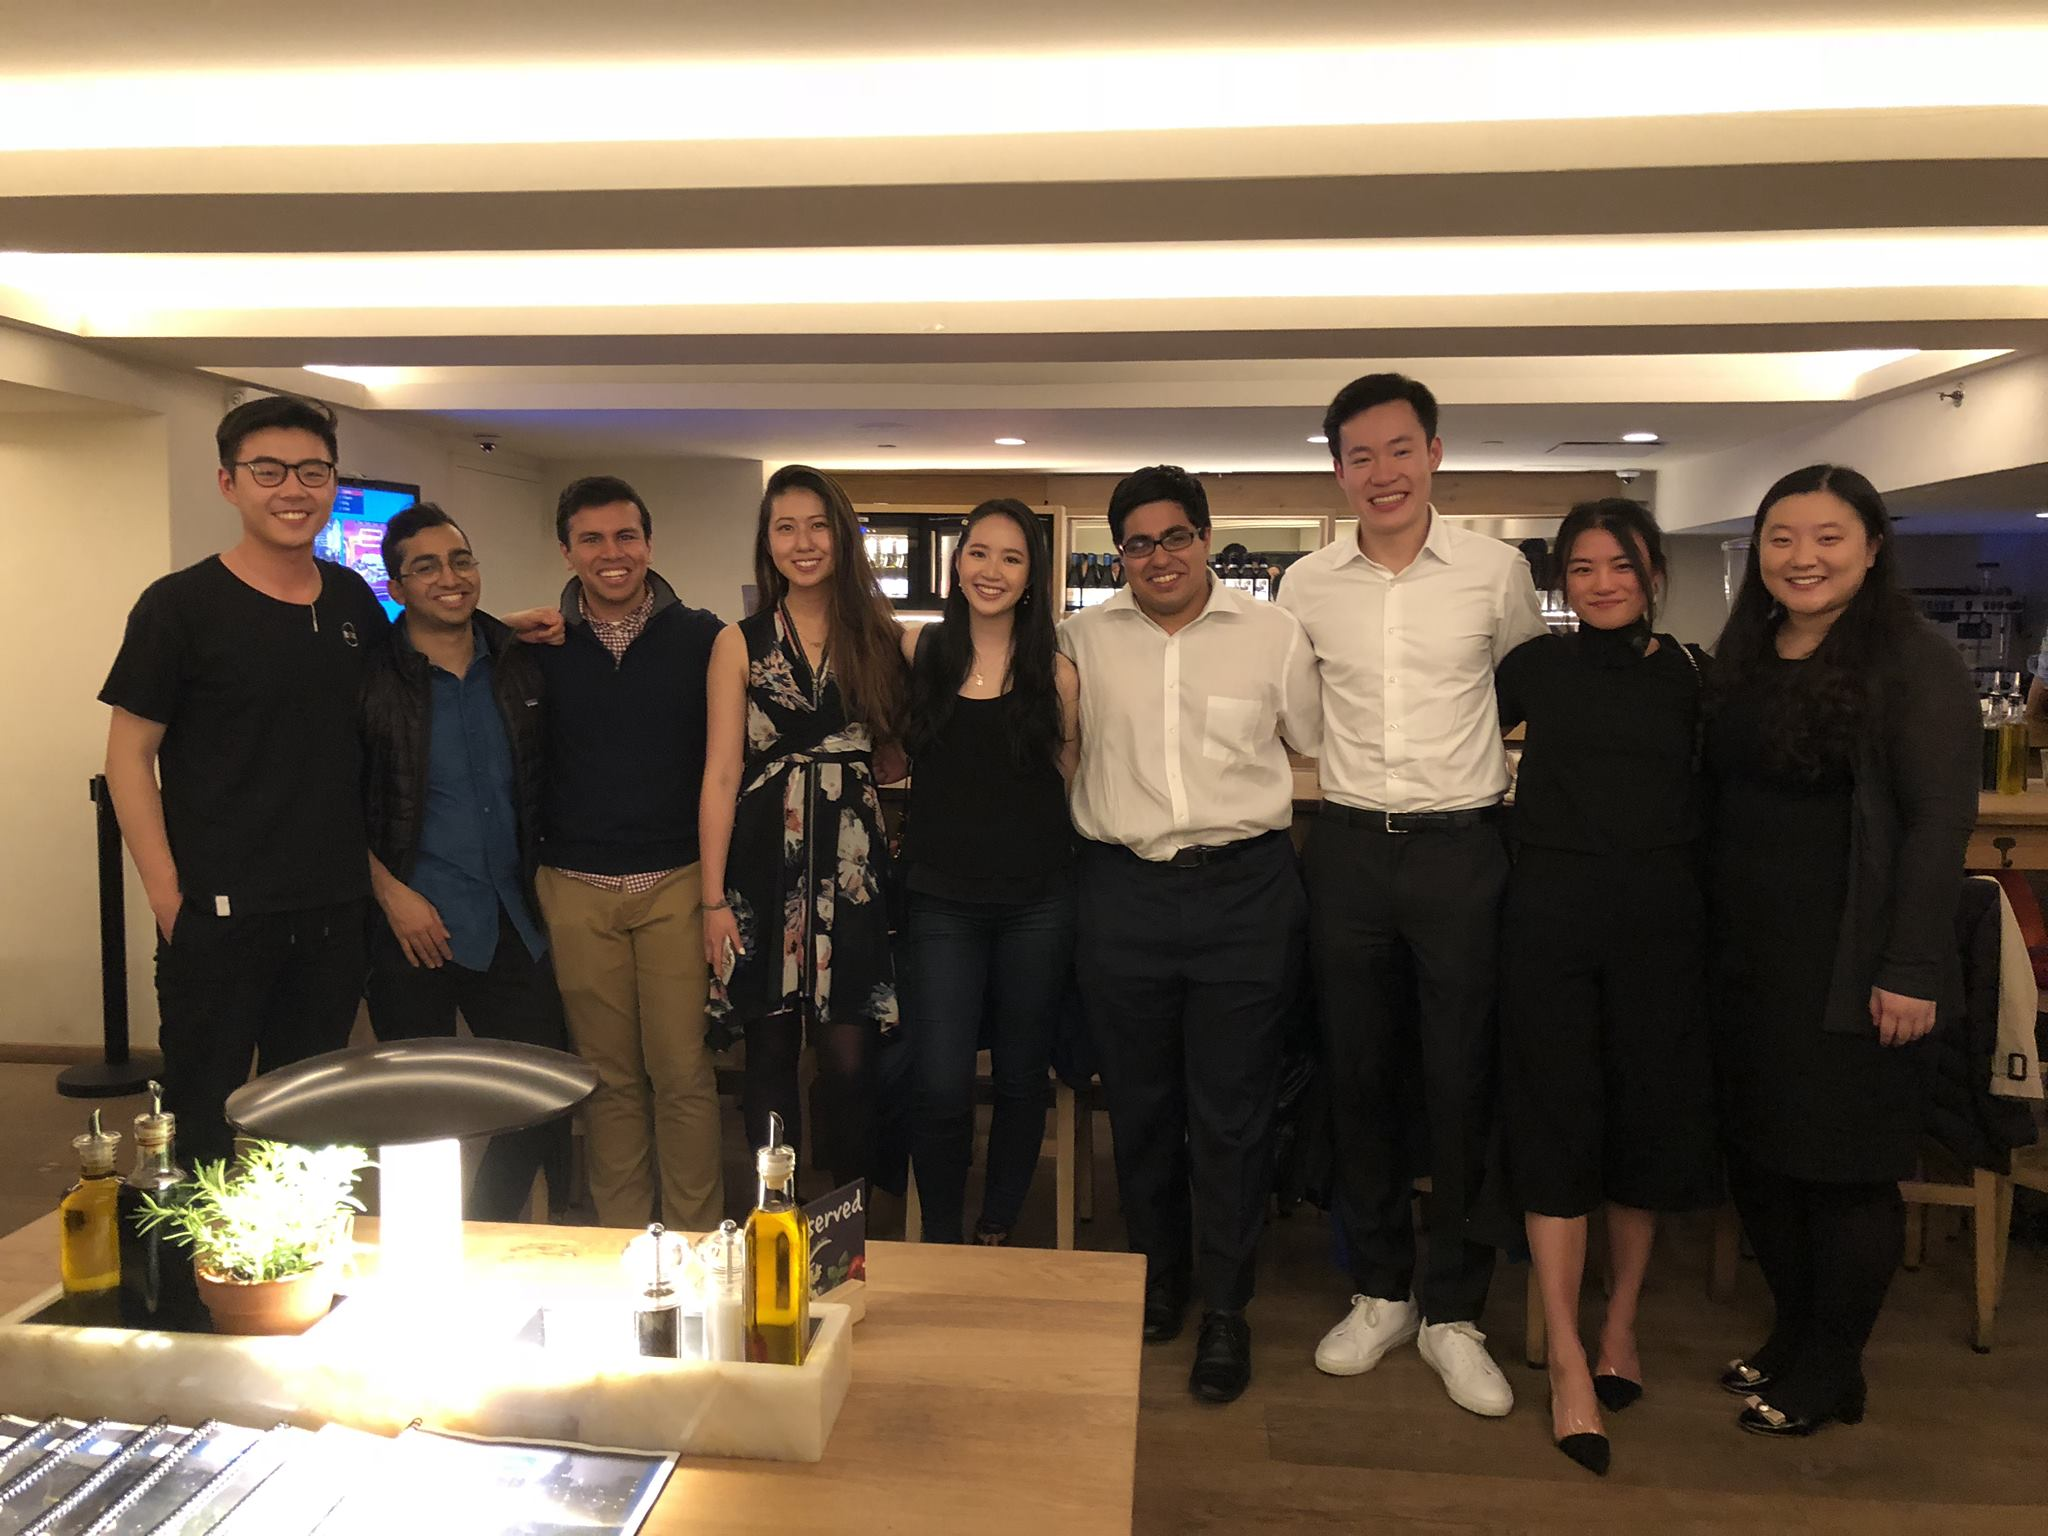 Left to right:  Evan Wang ('17), Mathew Roy ('16), Aditya Garg ('18), Angela Li ('17), Amanda Lin ('17), Varun Sawhney ('16), Wei Ming Wong ('16), Arlina Cai ('17), Jessica Ma ('18)   Not pictured:  Neil Bhuta ('18)